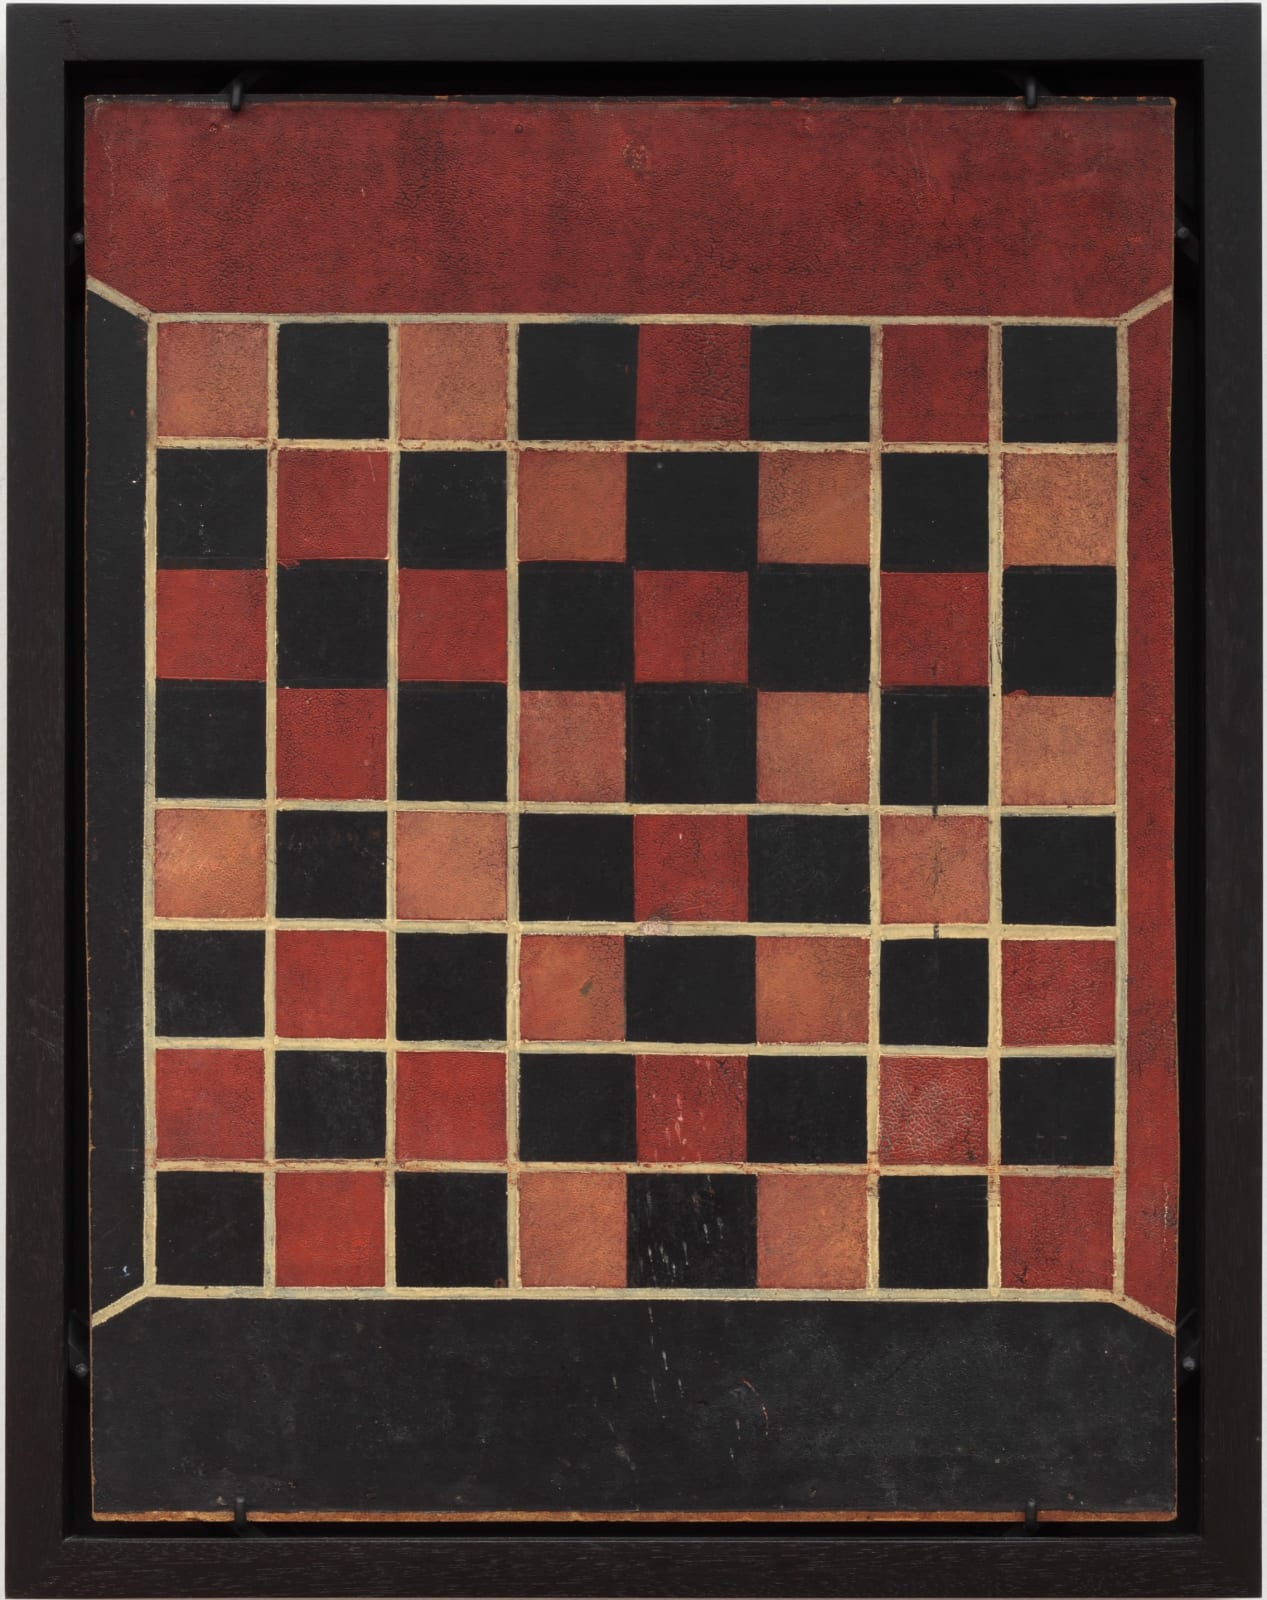 CHECKERS GAME BOARD, C. 1925-30 Polychrome on linoleum board 17 3/4 x 13 1/2 in. 45 x 34.3 cm. (AU 219)